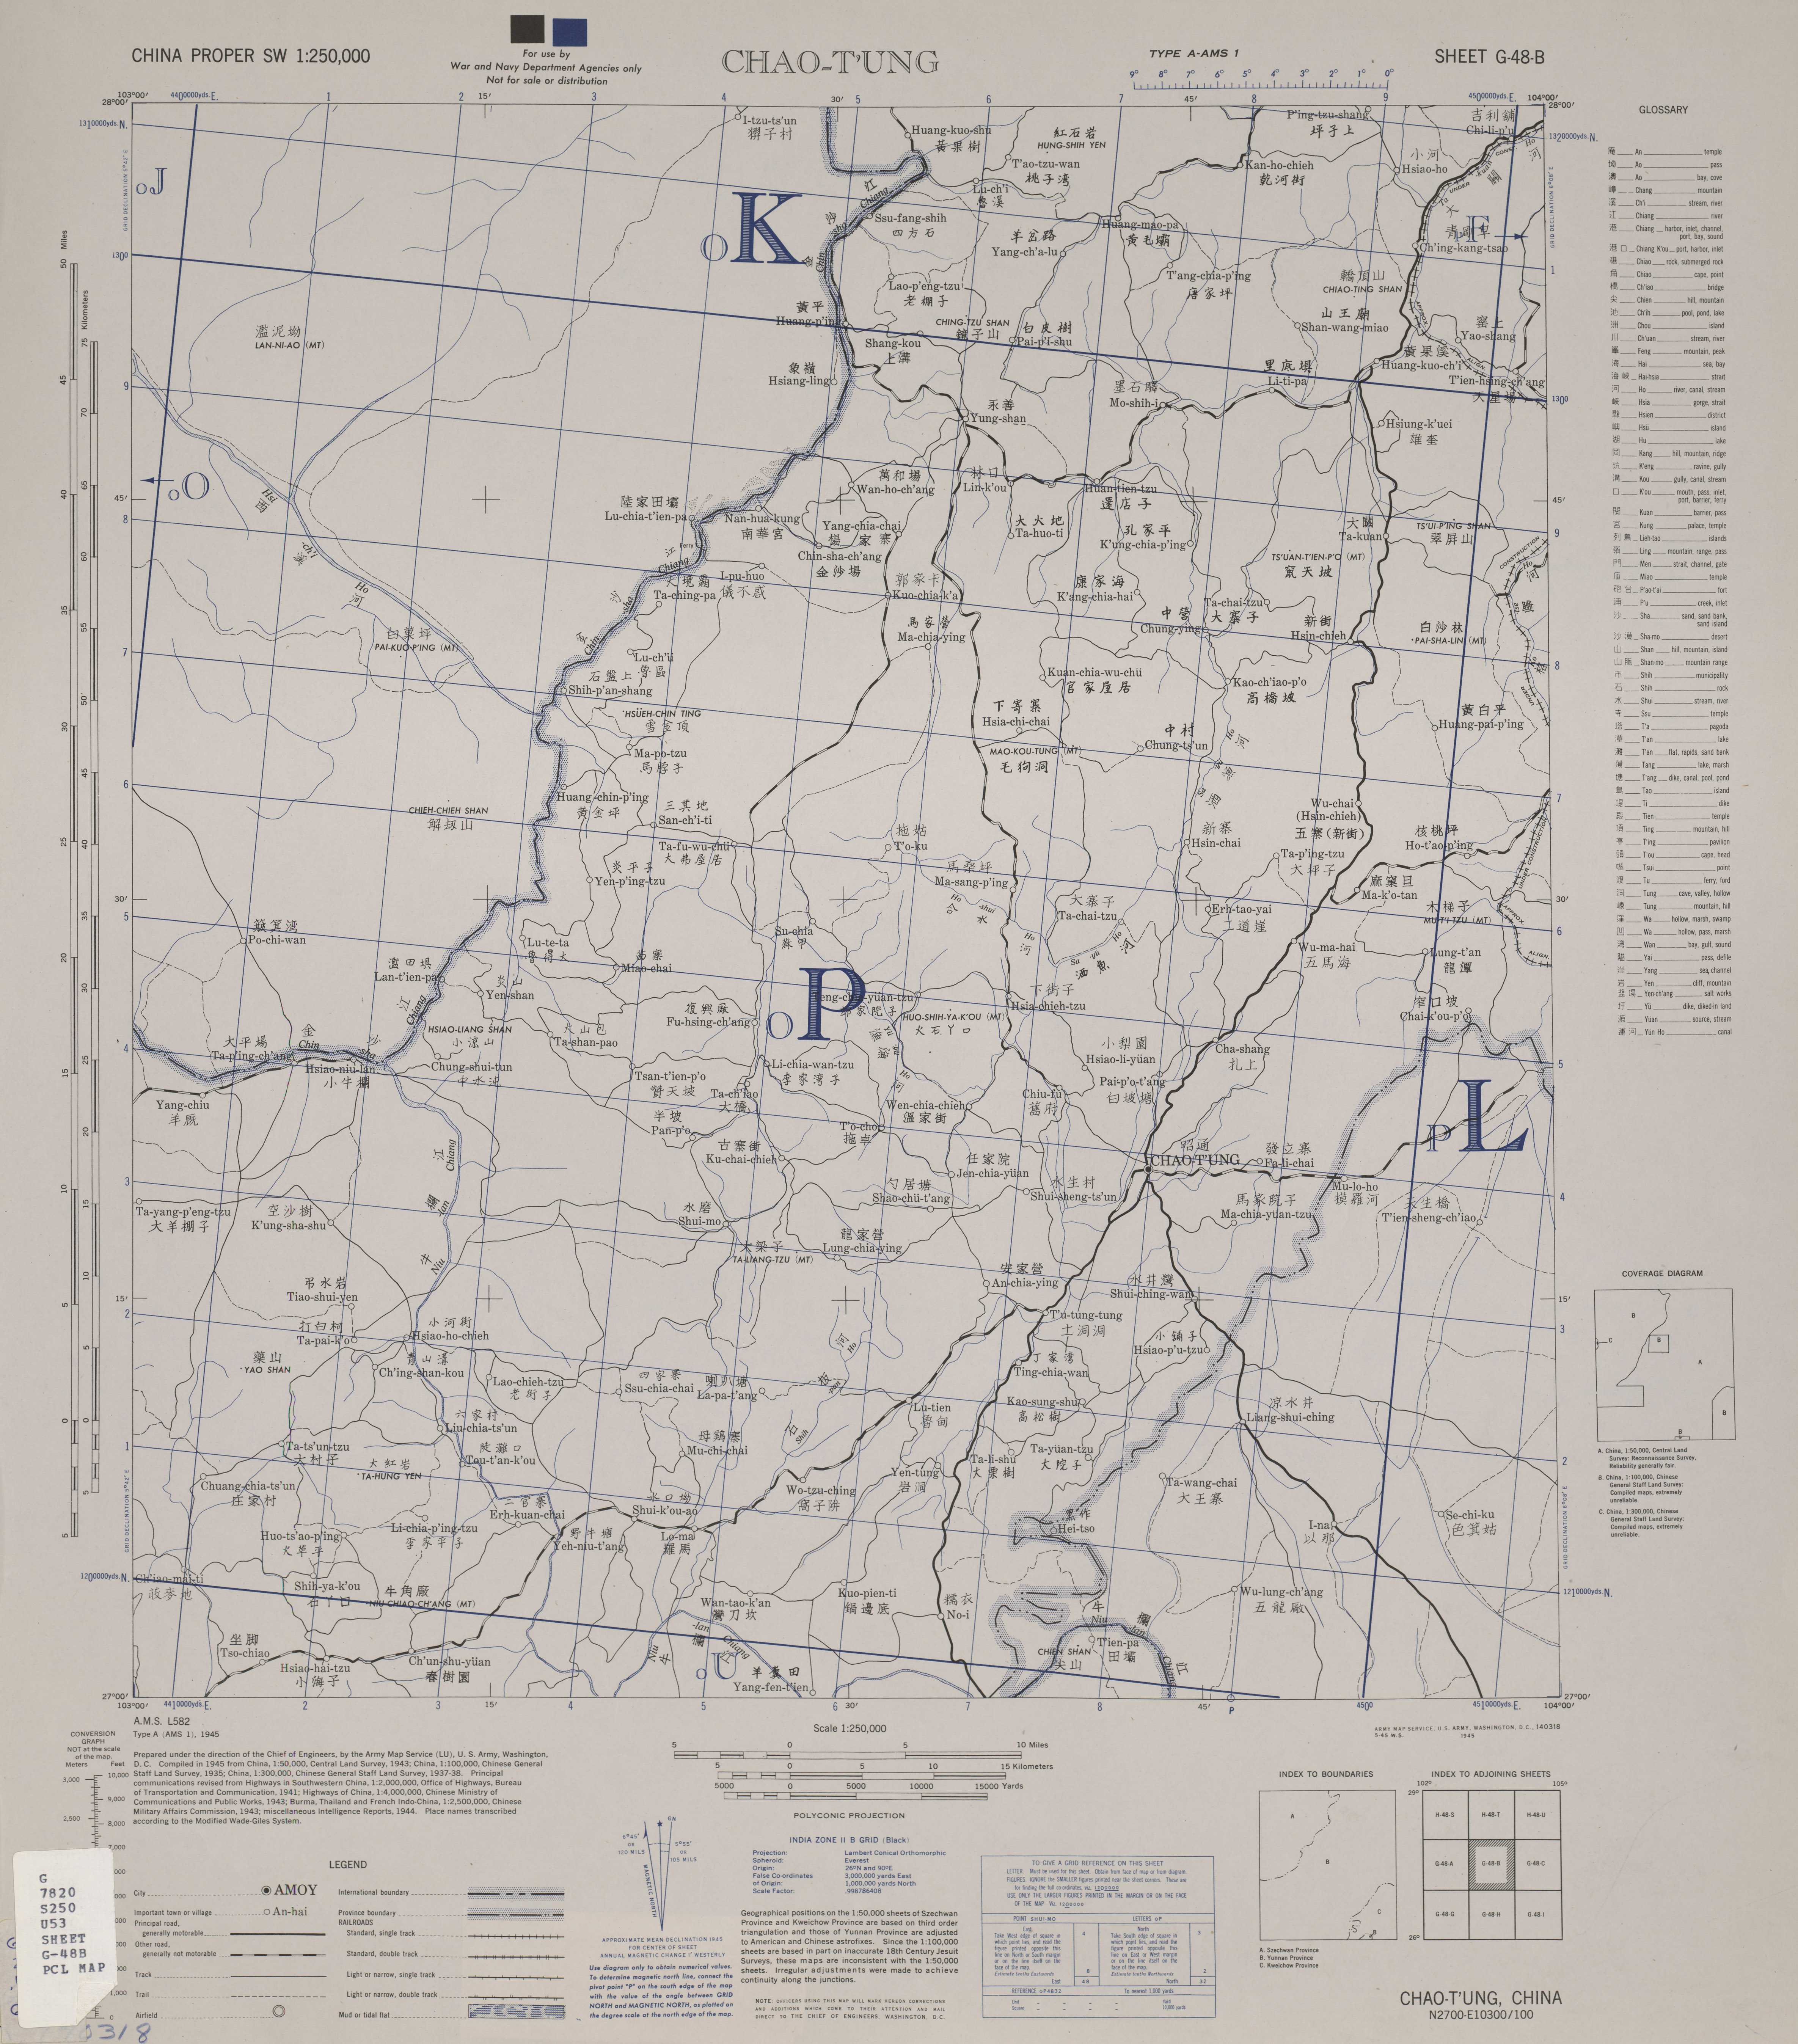 China Proper Southwest AMS Topographic Maps - Perry-Castañeda Map ...